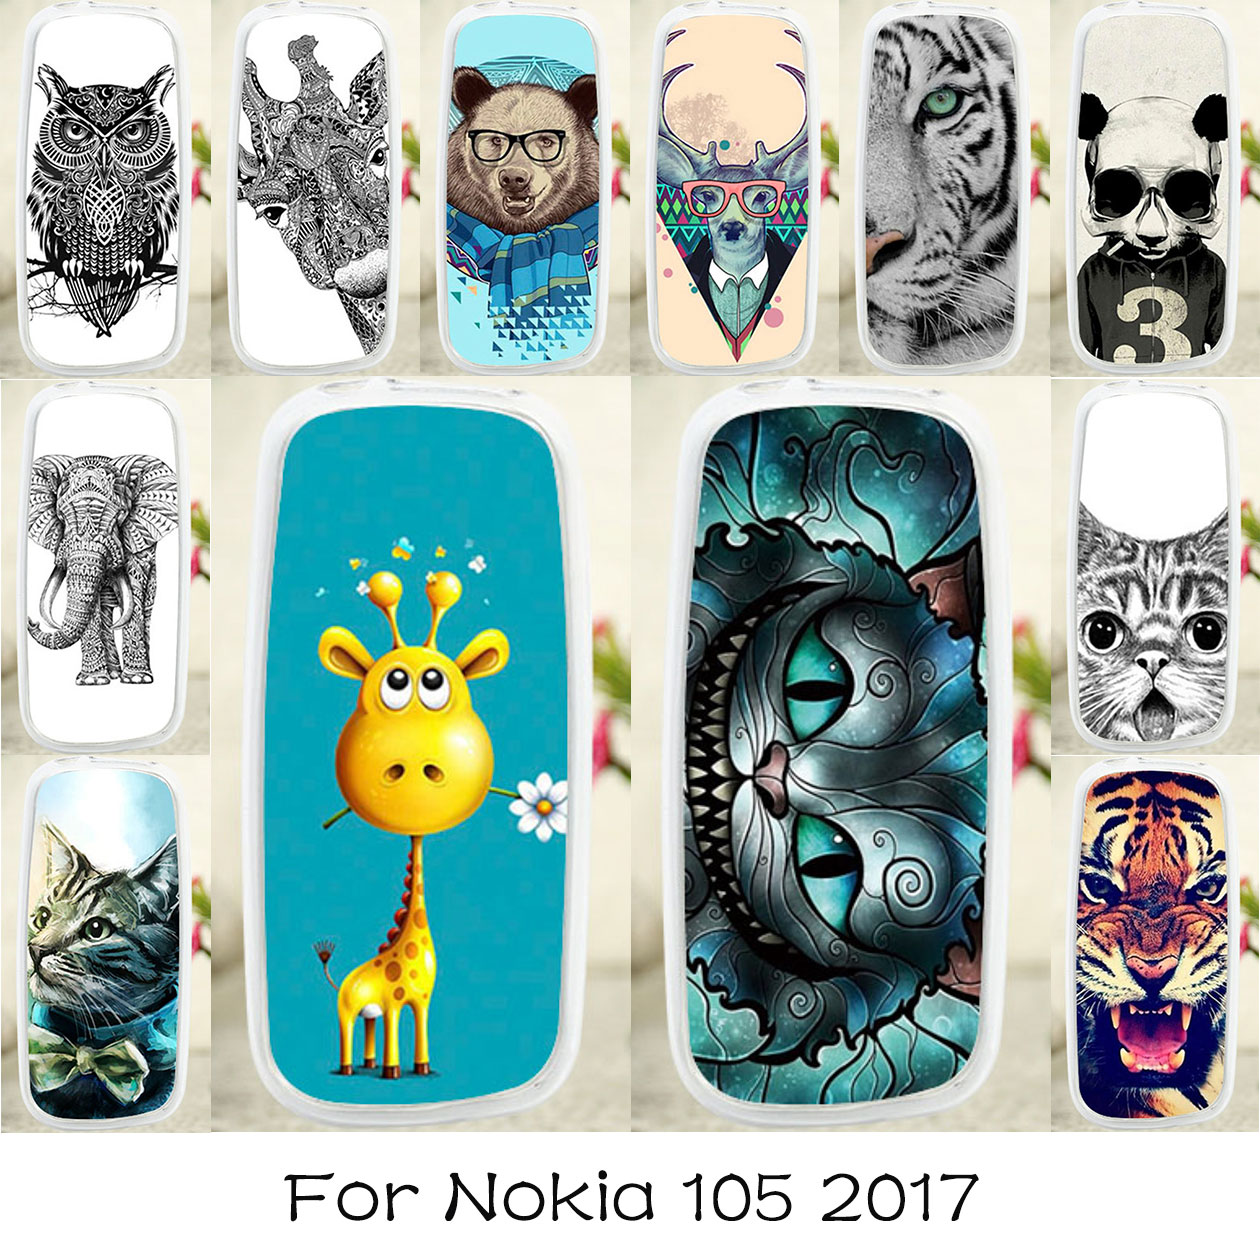 TAOYUNXI Soft TPU <font><b>Case</b></font> For <font><b>Nokia</b></font> <font><b>105</b></font> <font><b>2017</b></font> <font><b>Case</b></font> DIY Dirt-resistant TA-1010 Cover For <font><b>Nokia</b></font> <font><b>105</b></font> <font><b>2017</b></font> <font><b>Cases</b></font> Silicone Cat Animal image